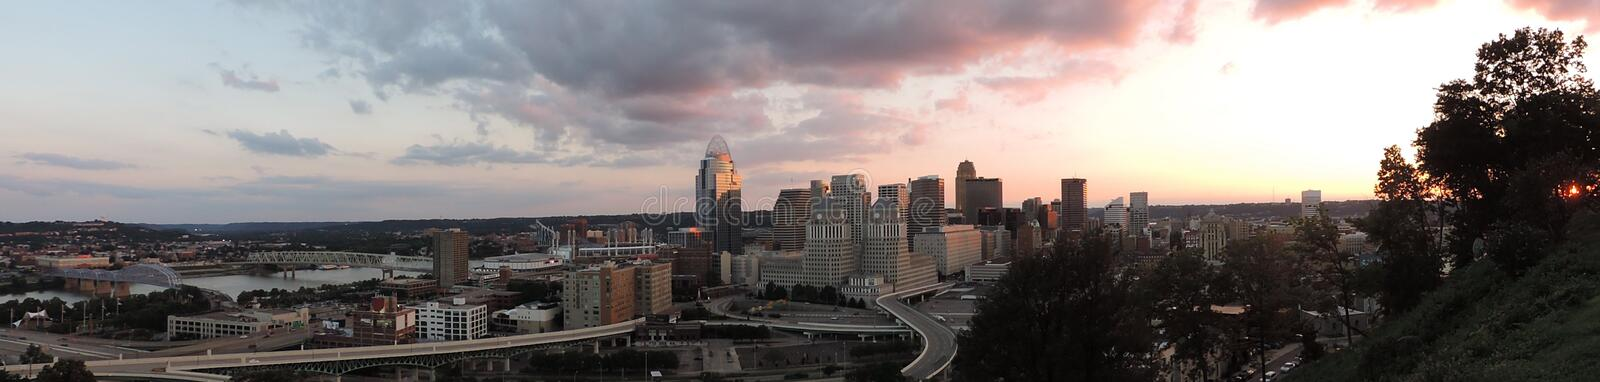 Cincinnati skyline from Mount Adams royalty free stock photo